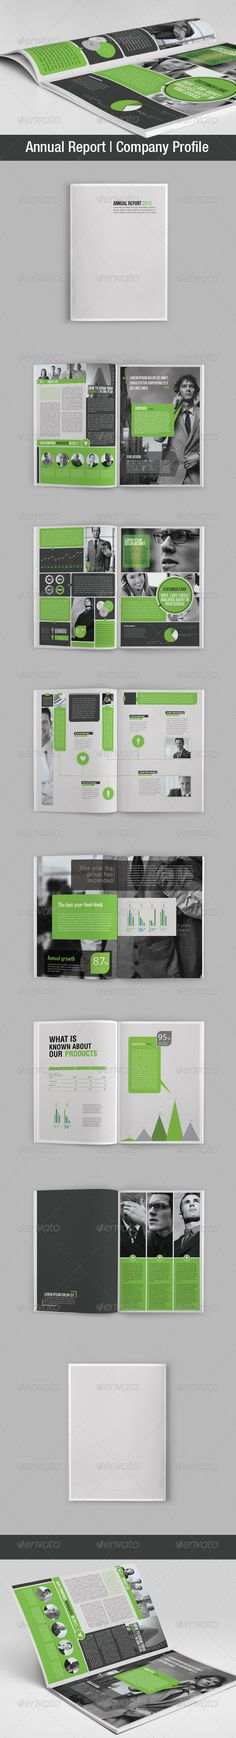 iPad \ Tablet Infographic Annual Report Annual reports and - free annual report templates